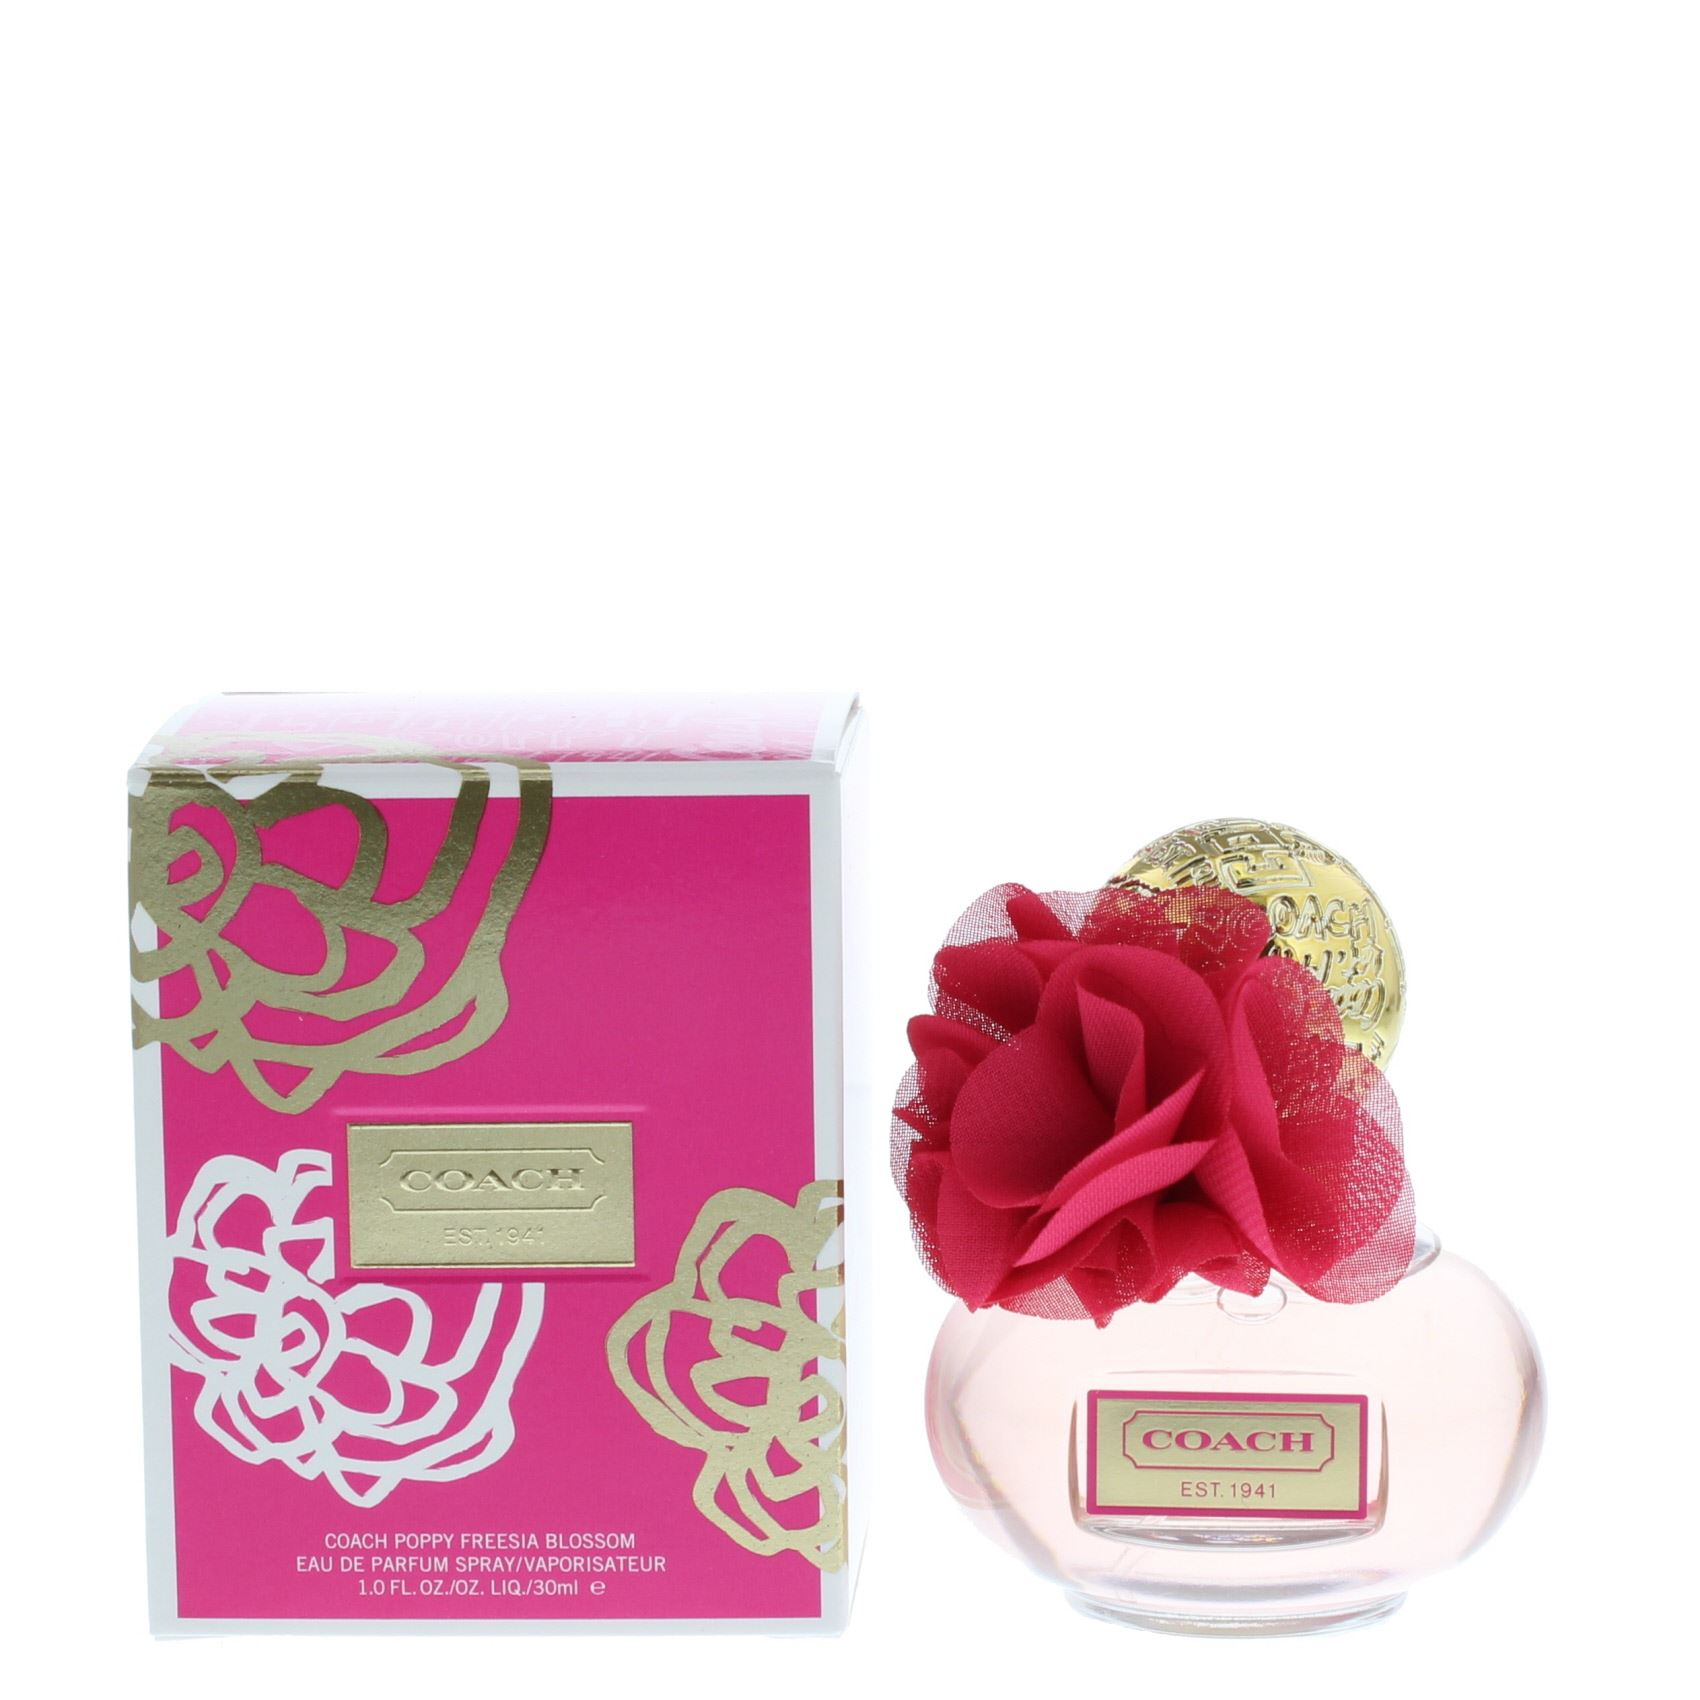 Coach Poppy Freesia Blossom Eau De Parfum 30ml Spray For Her Edp